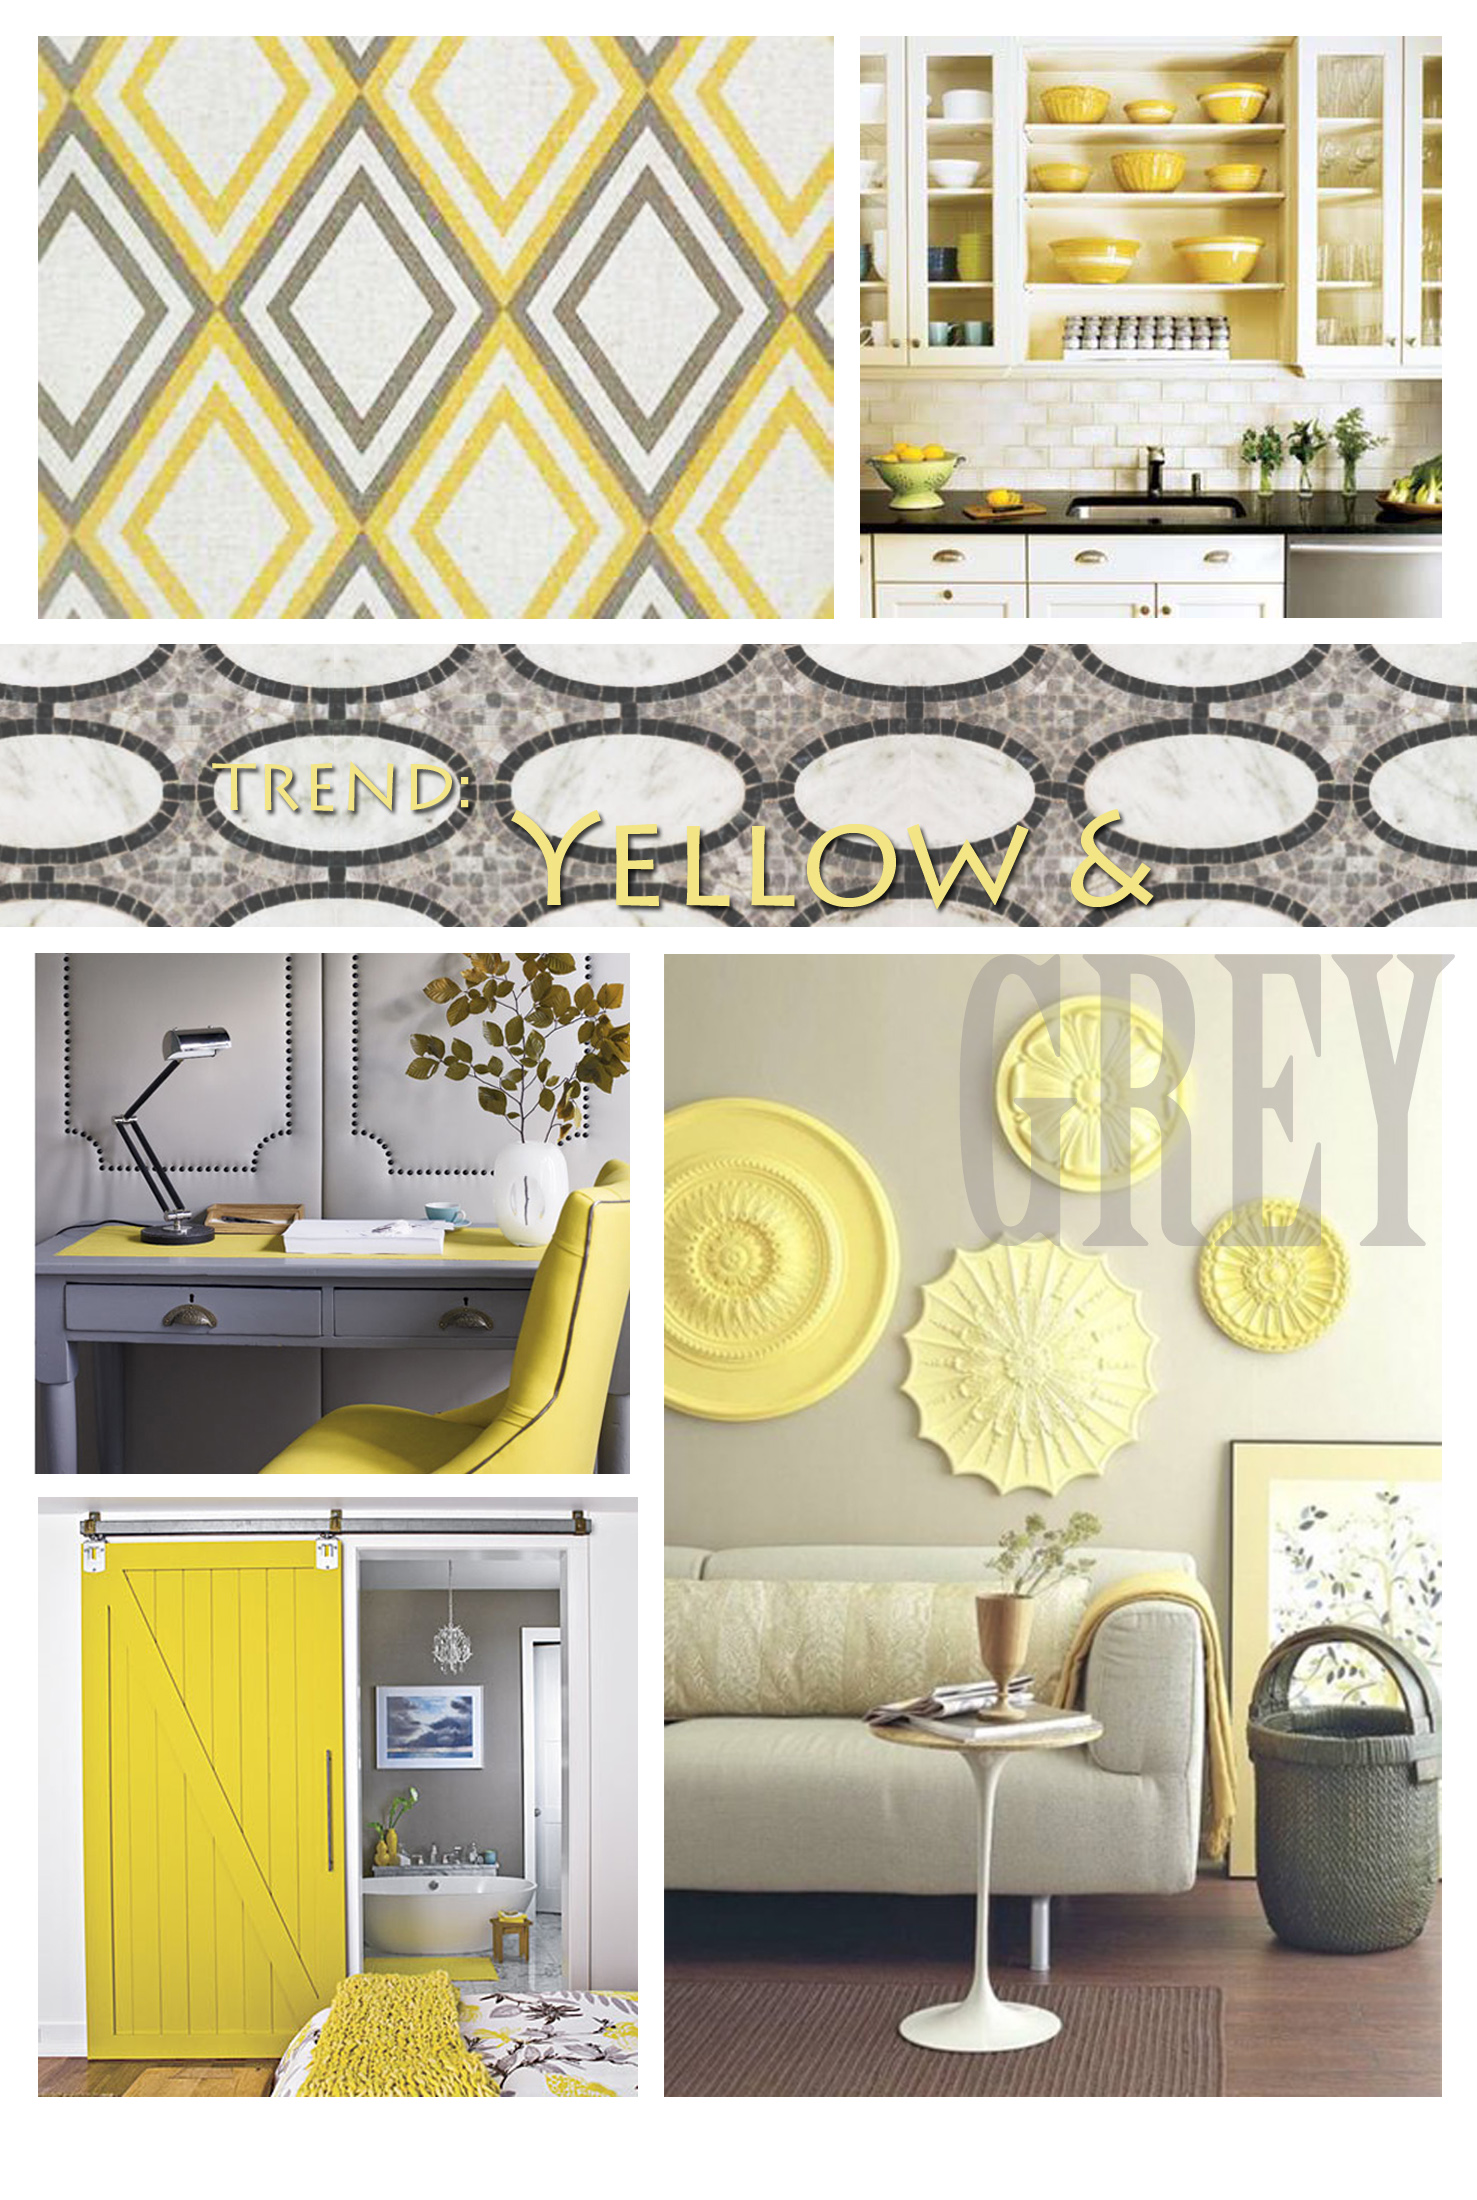 Trend yellow and grey apartments i like blog - Colour scheme ideas for living room ...